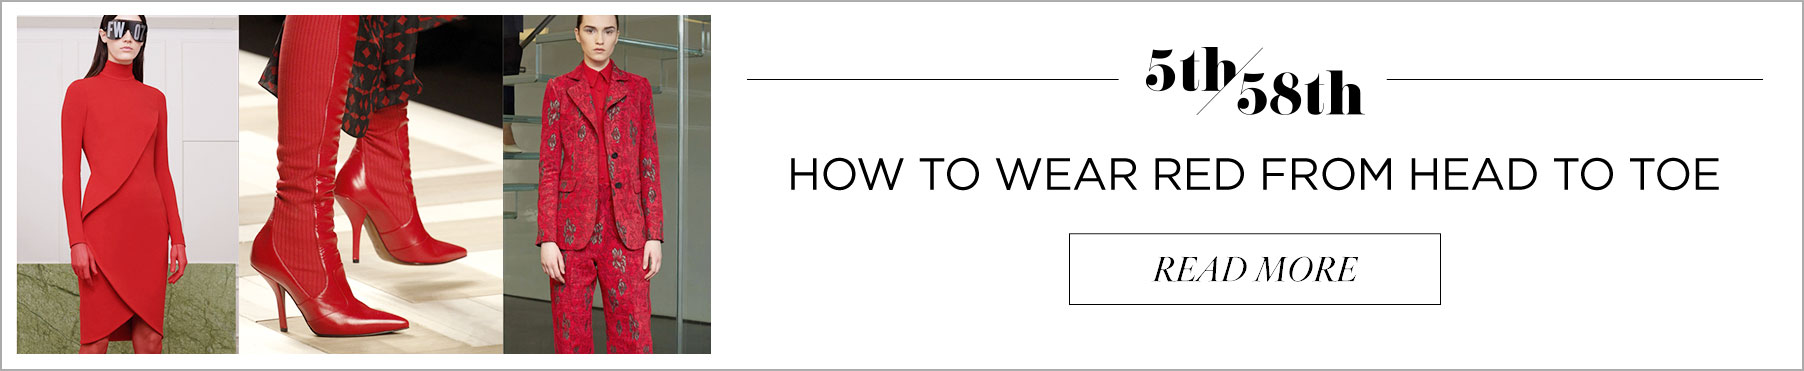 How To Wear Red From Head To Toe